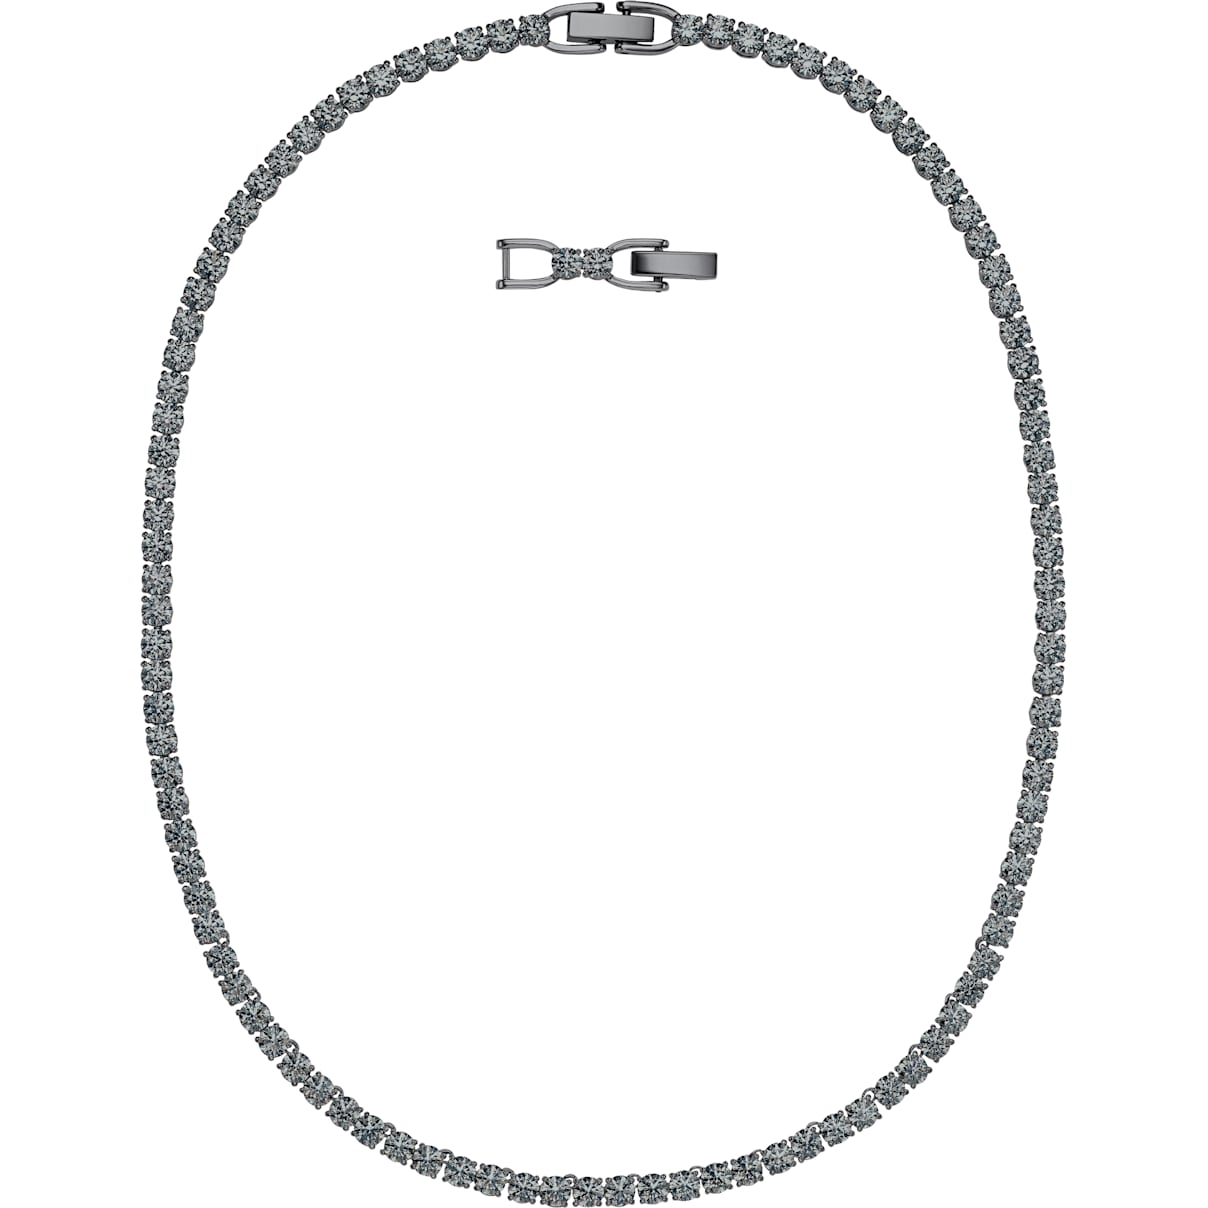 Swarovski Tennis Deluxe Necklace, Black, Ruthenium plated